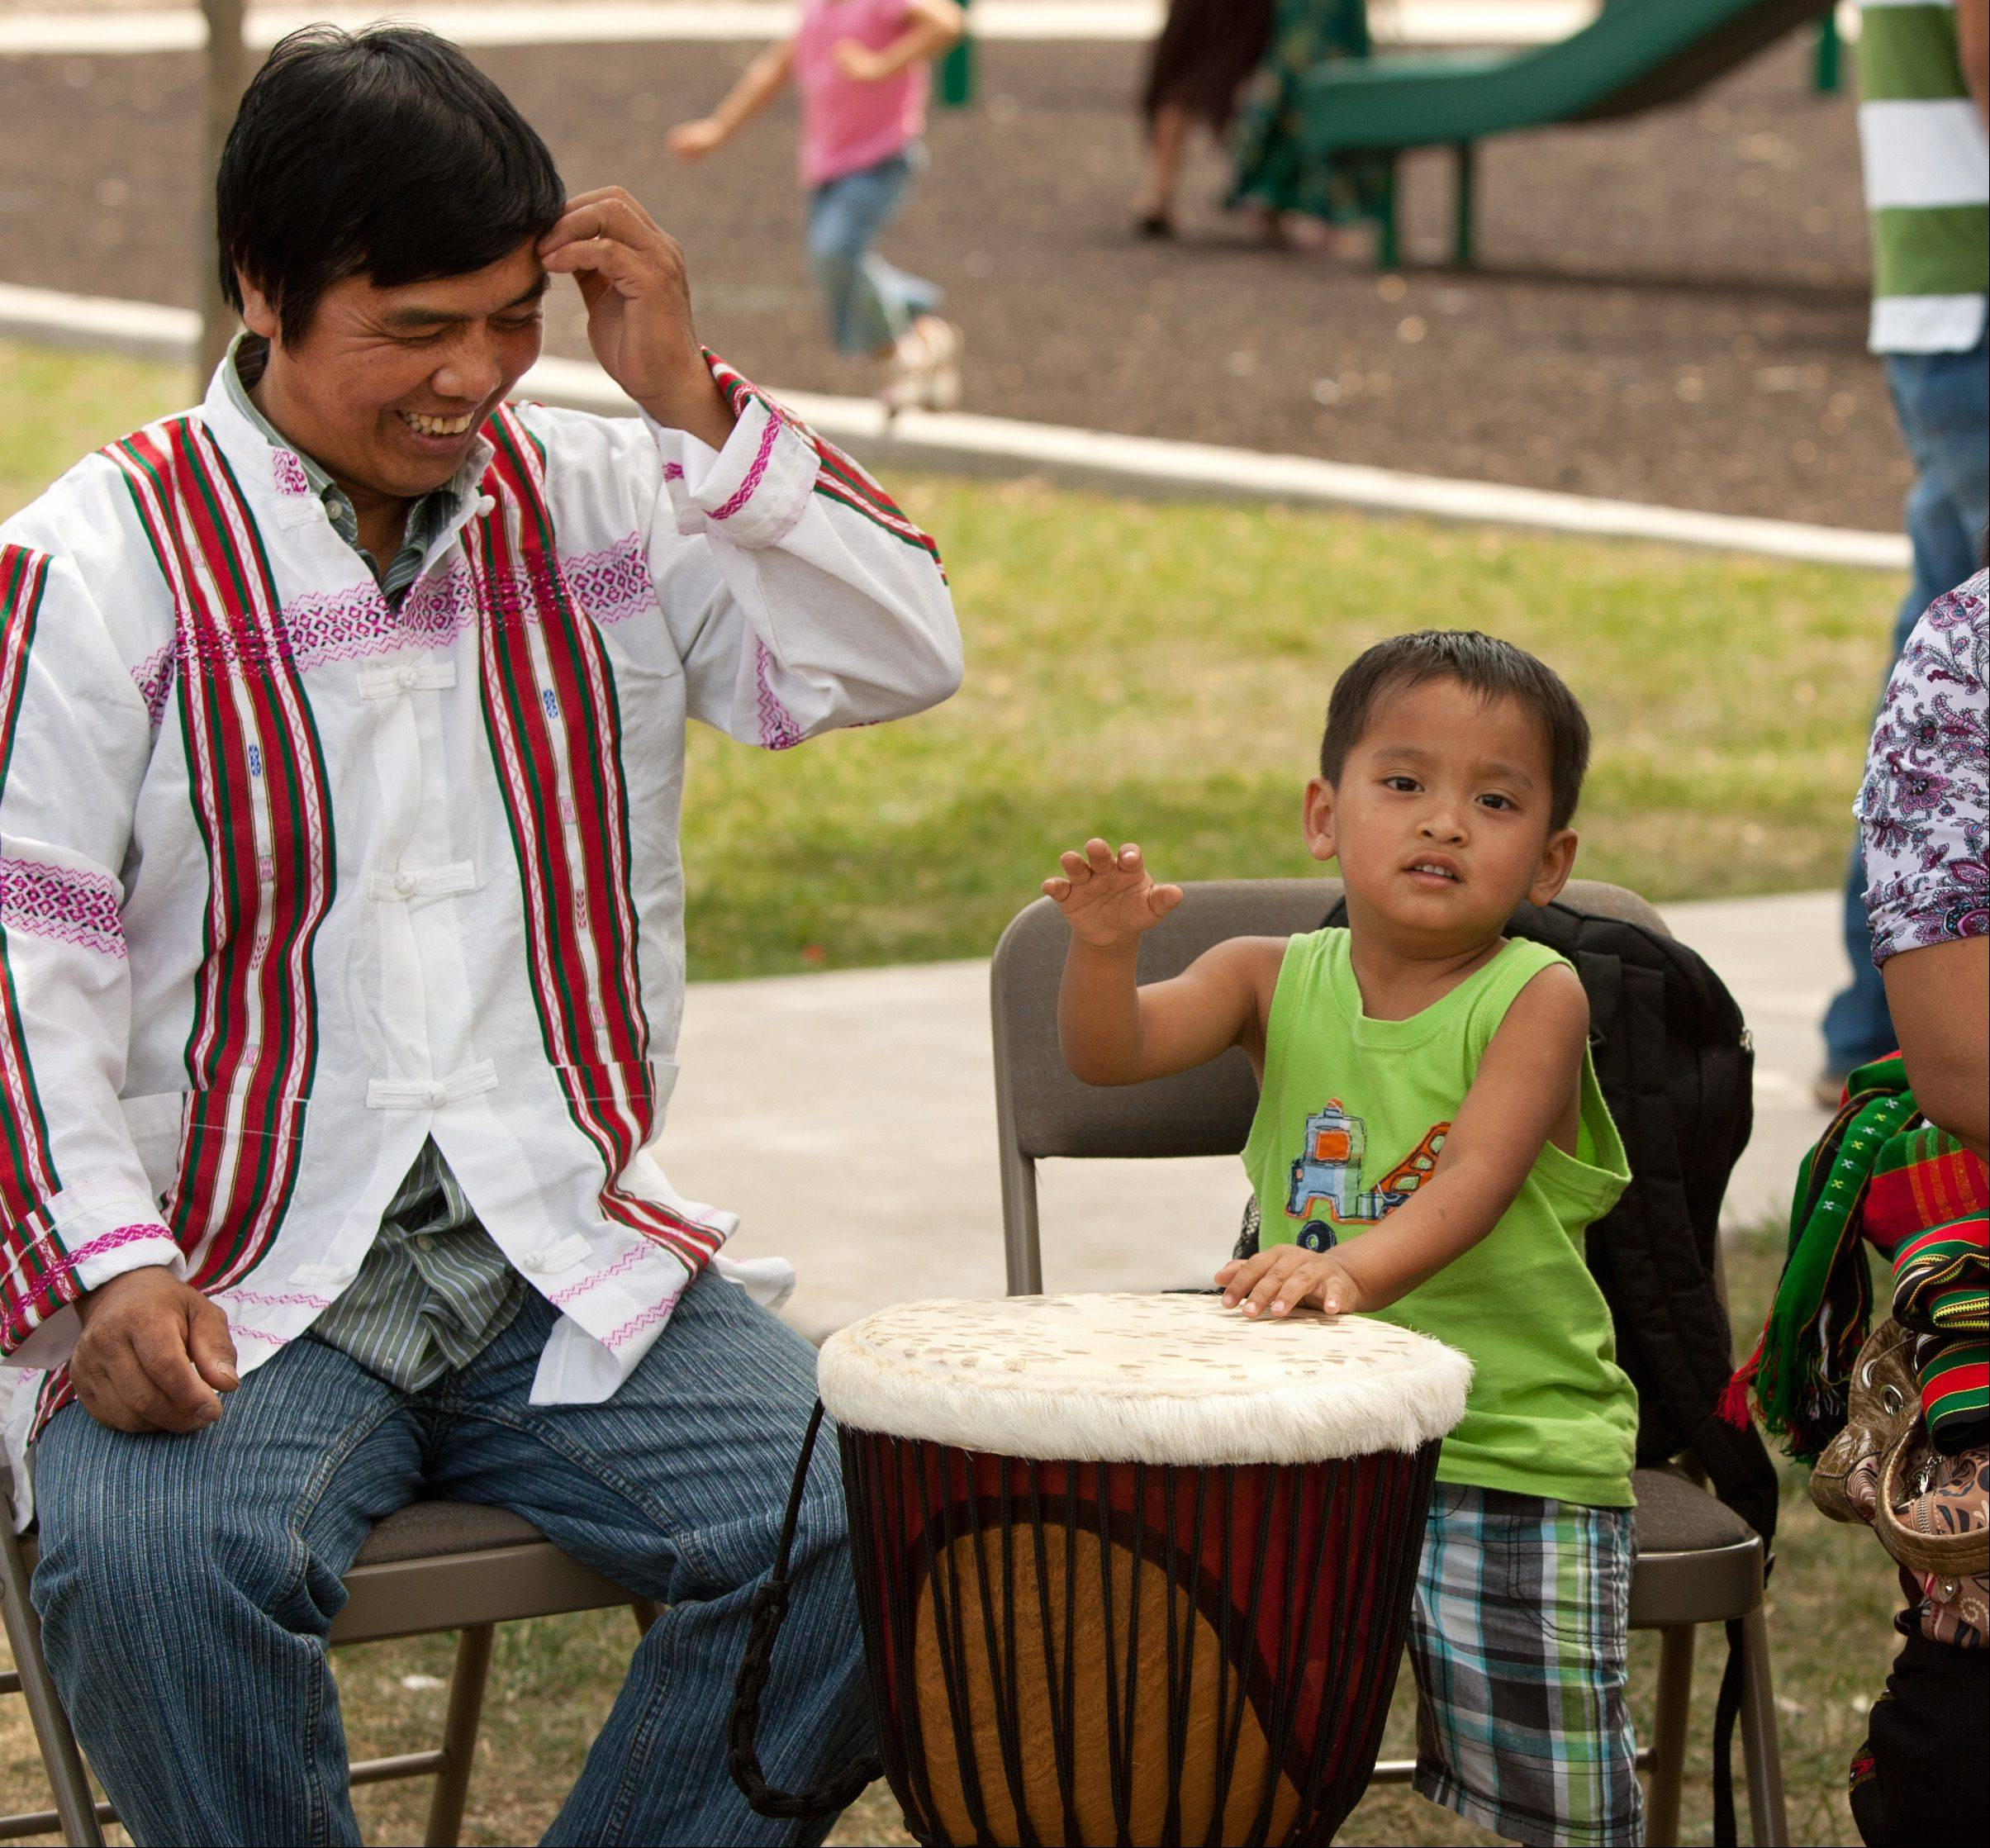 Pius Paucin, left, of Wheaton listens to Abraham Kapcinkhai, 3, of Glen Ellyn as the boy plays the Khuang drum Saturday in Wheaton at a picnic hosted by World Relief DuPage/Aurora and Exodus World Services. The picnic recognized World Refugee Day, which was June 20.